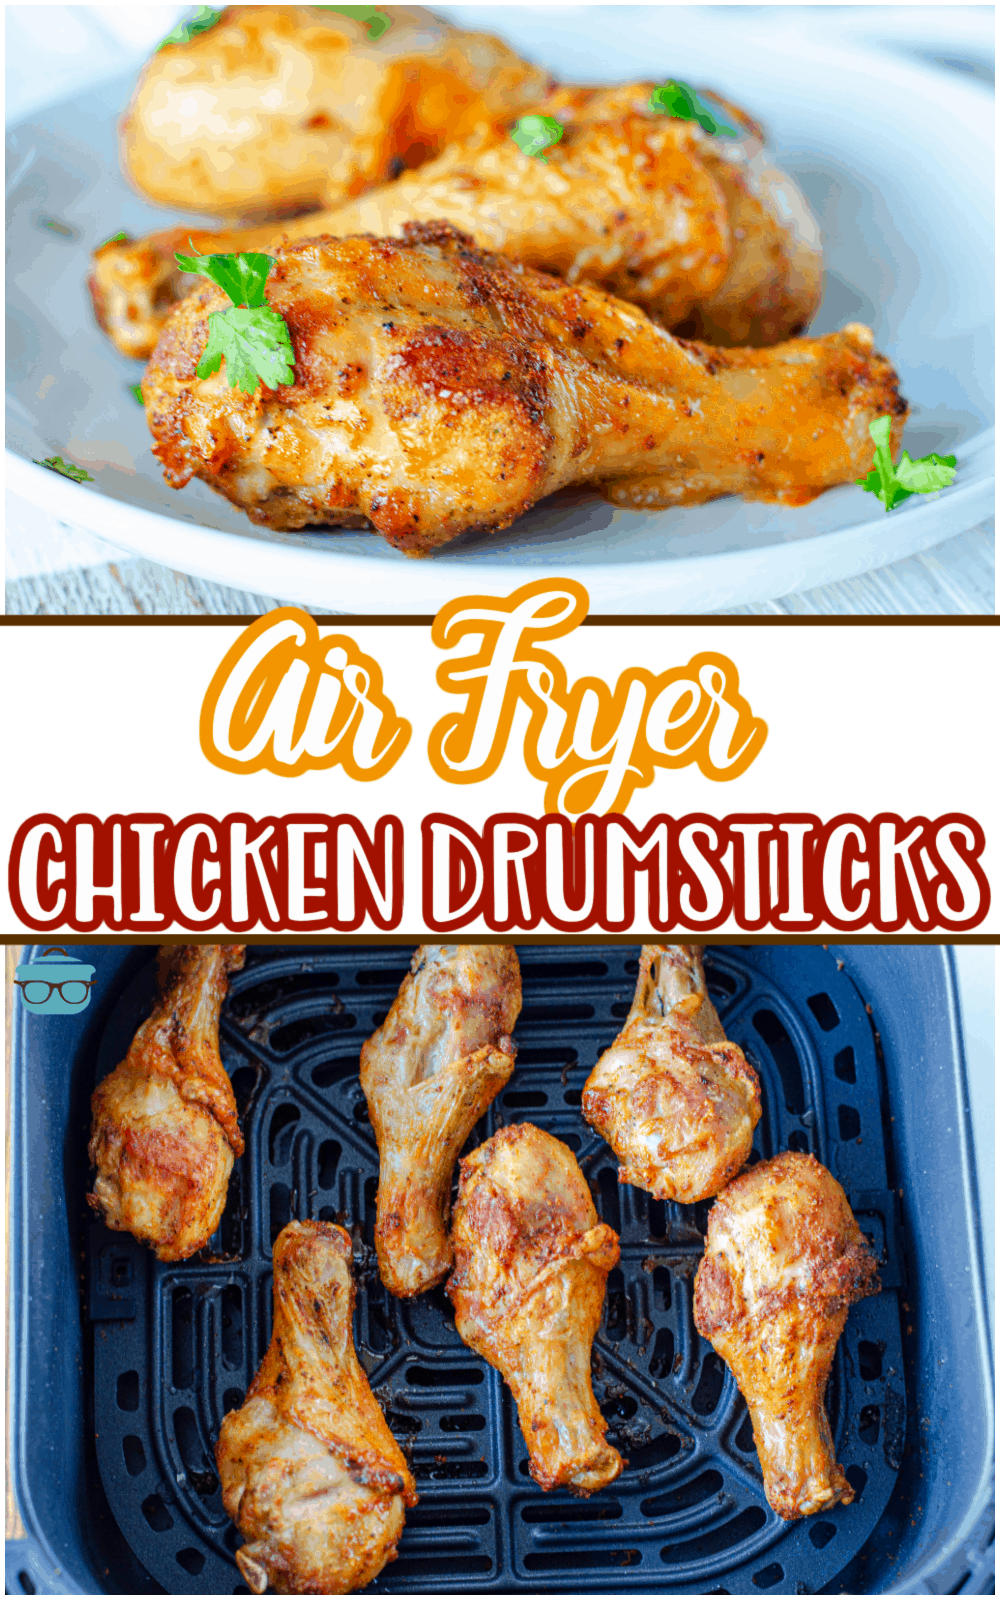 A crispy and delicious recipe with minimal and simple ingredients and ready in under 20 minutes! These Air Fryer Chicken Drumsticks are the perfect meal to serve any day of the week!